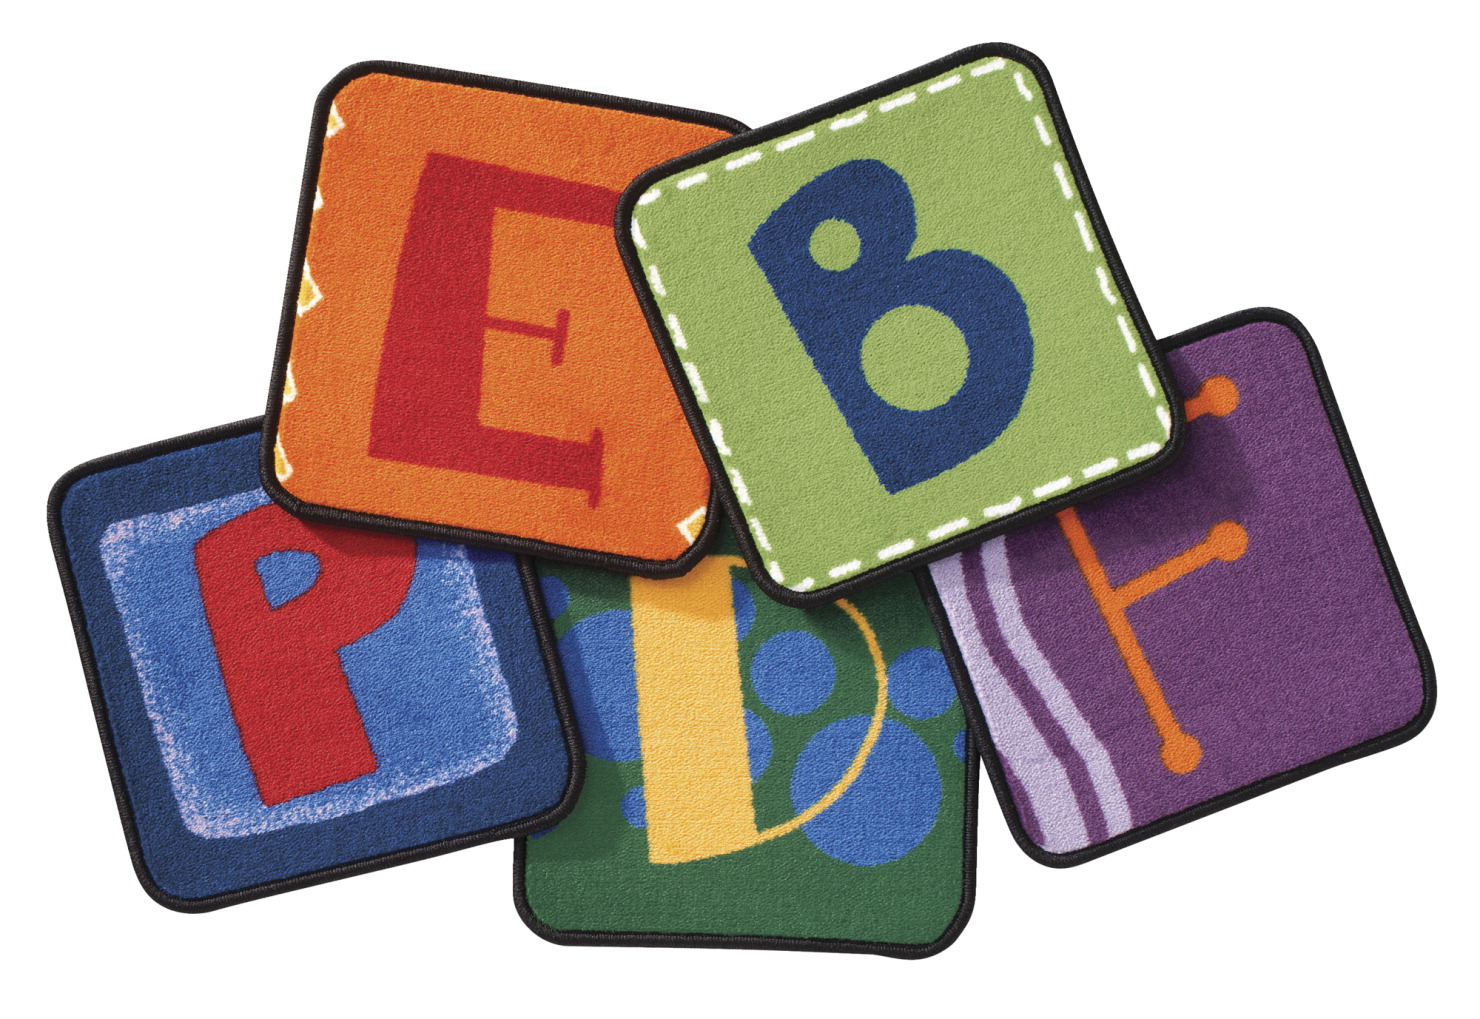 Carpets for Kids Toddler Alphabet Block Carpet Squares, 14 Inches, Primary Colors, Set of 26